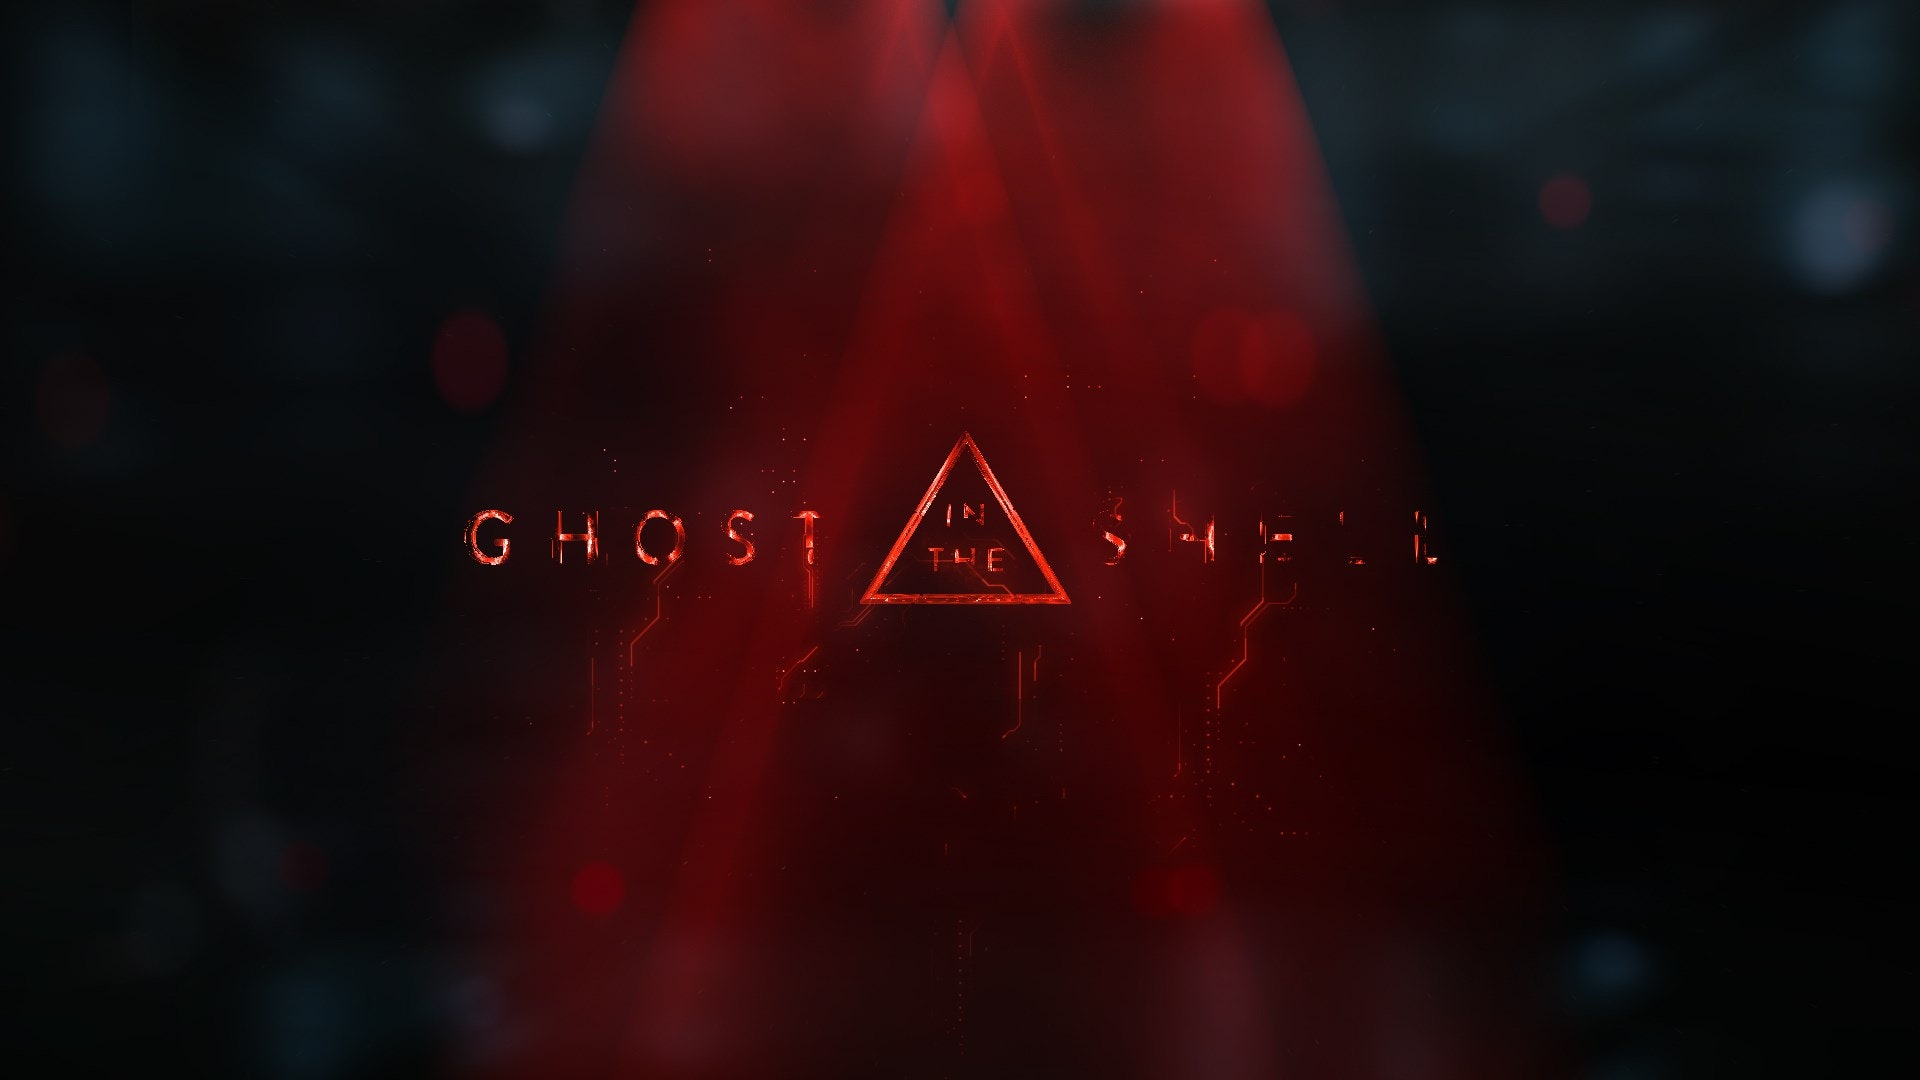 Vinicius Naldi - Ghost In The Shell Titles